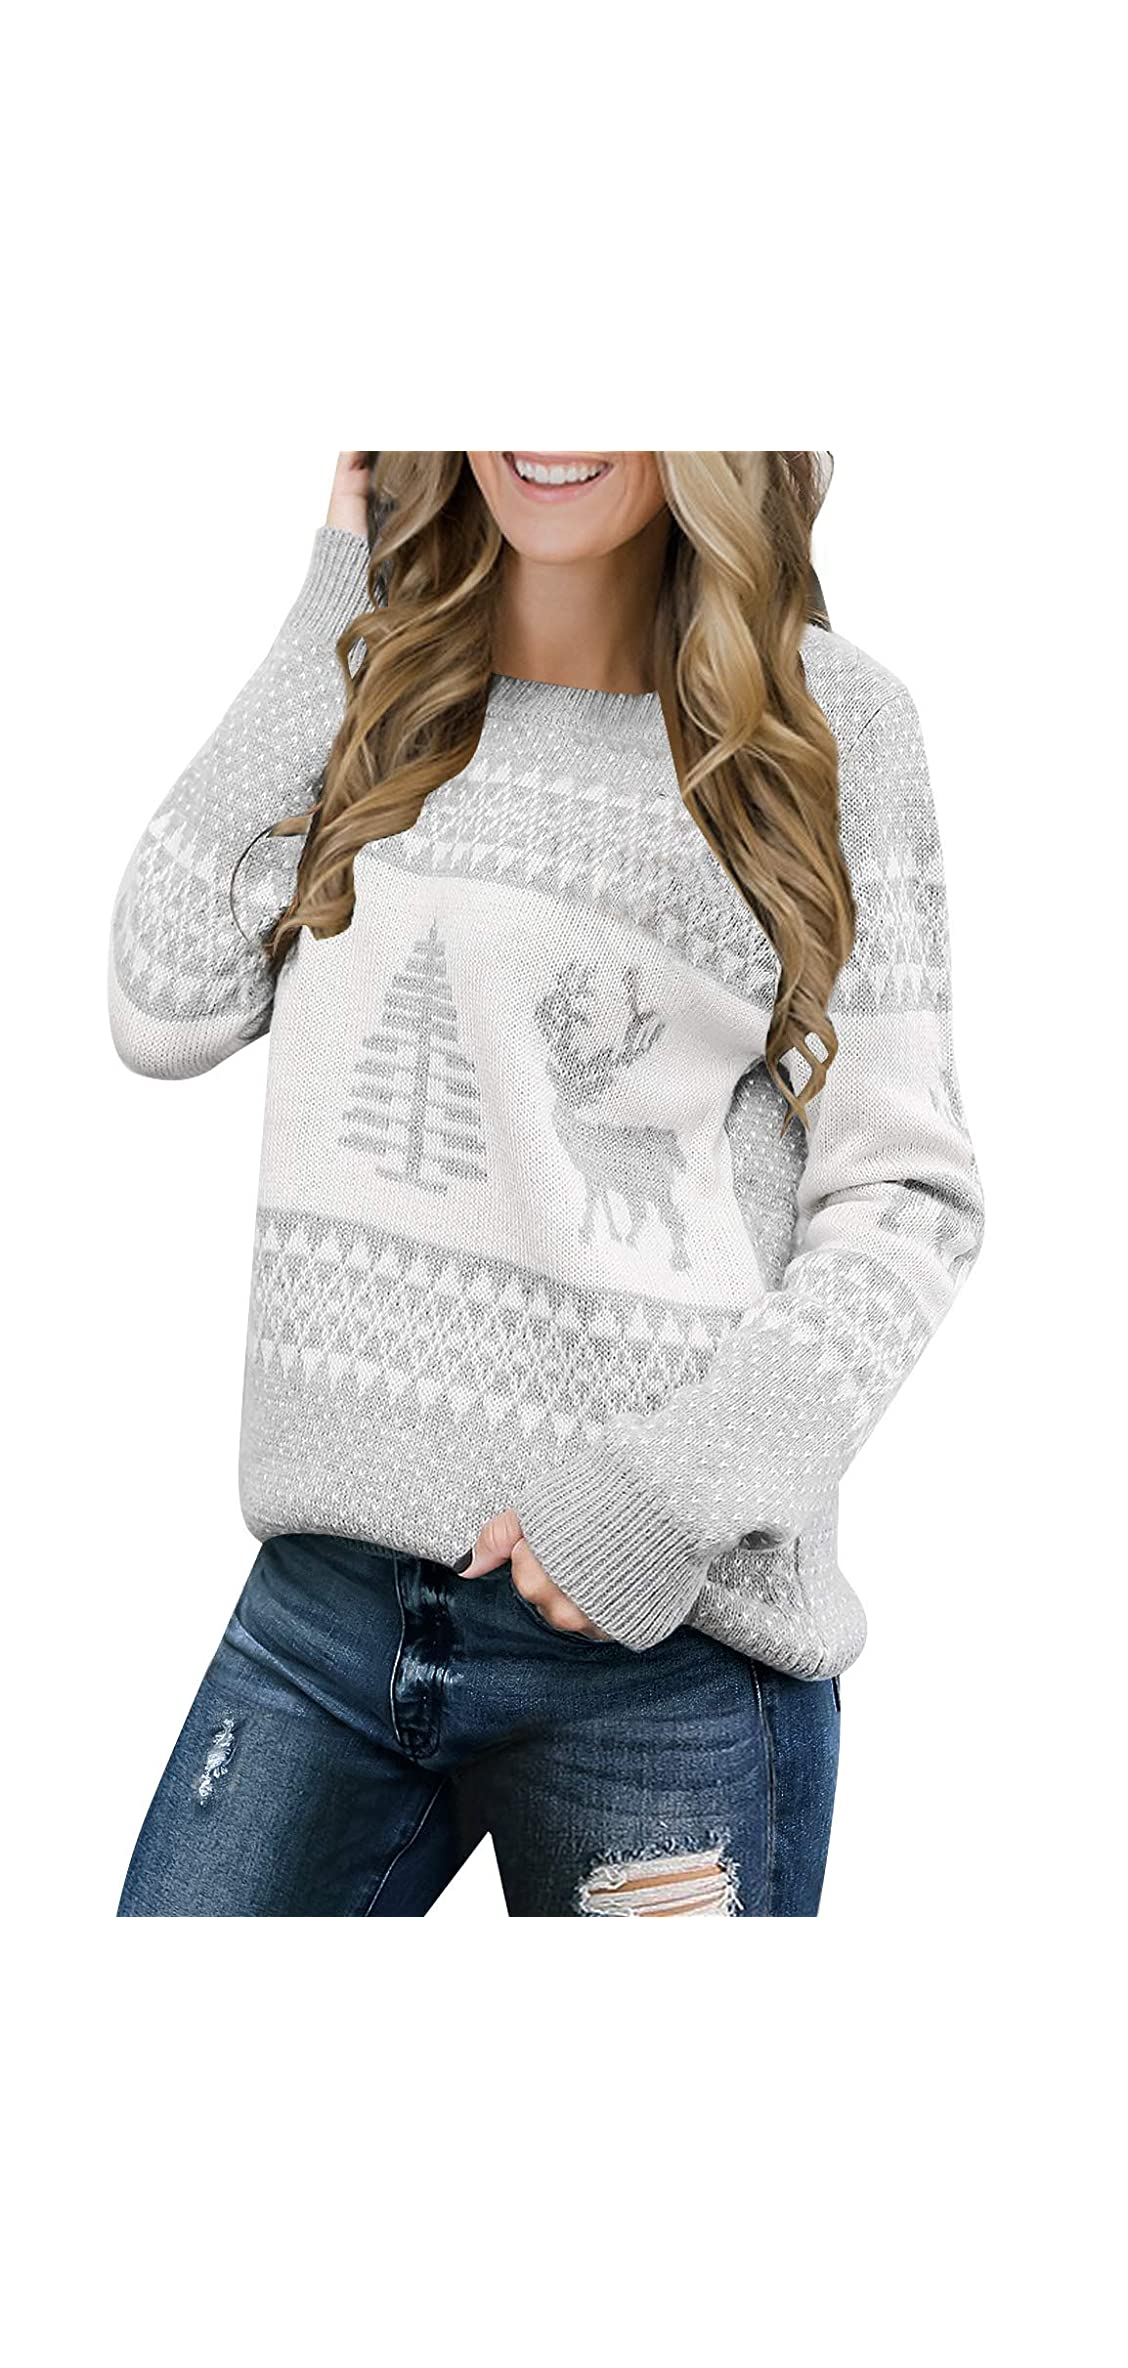 Women Ugly Christmas Tree Reindeer Holiday Knit